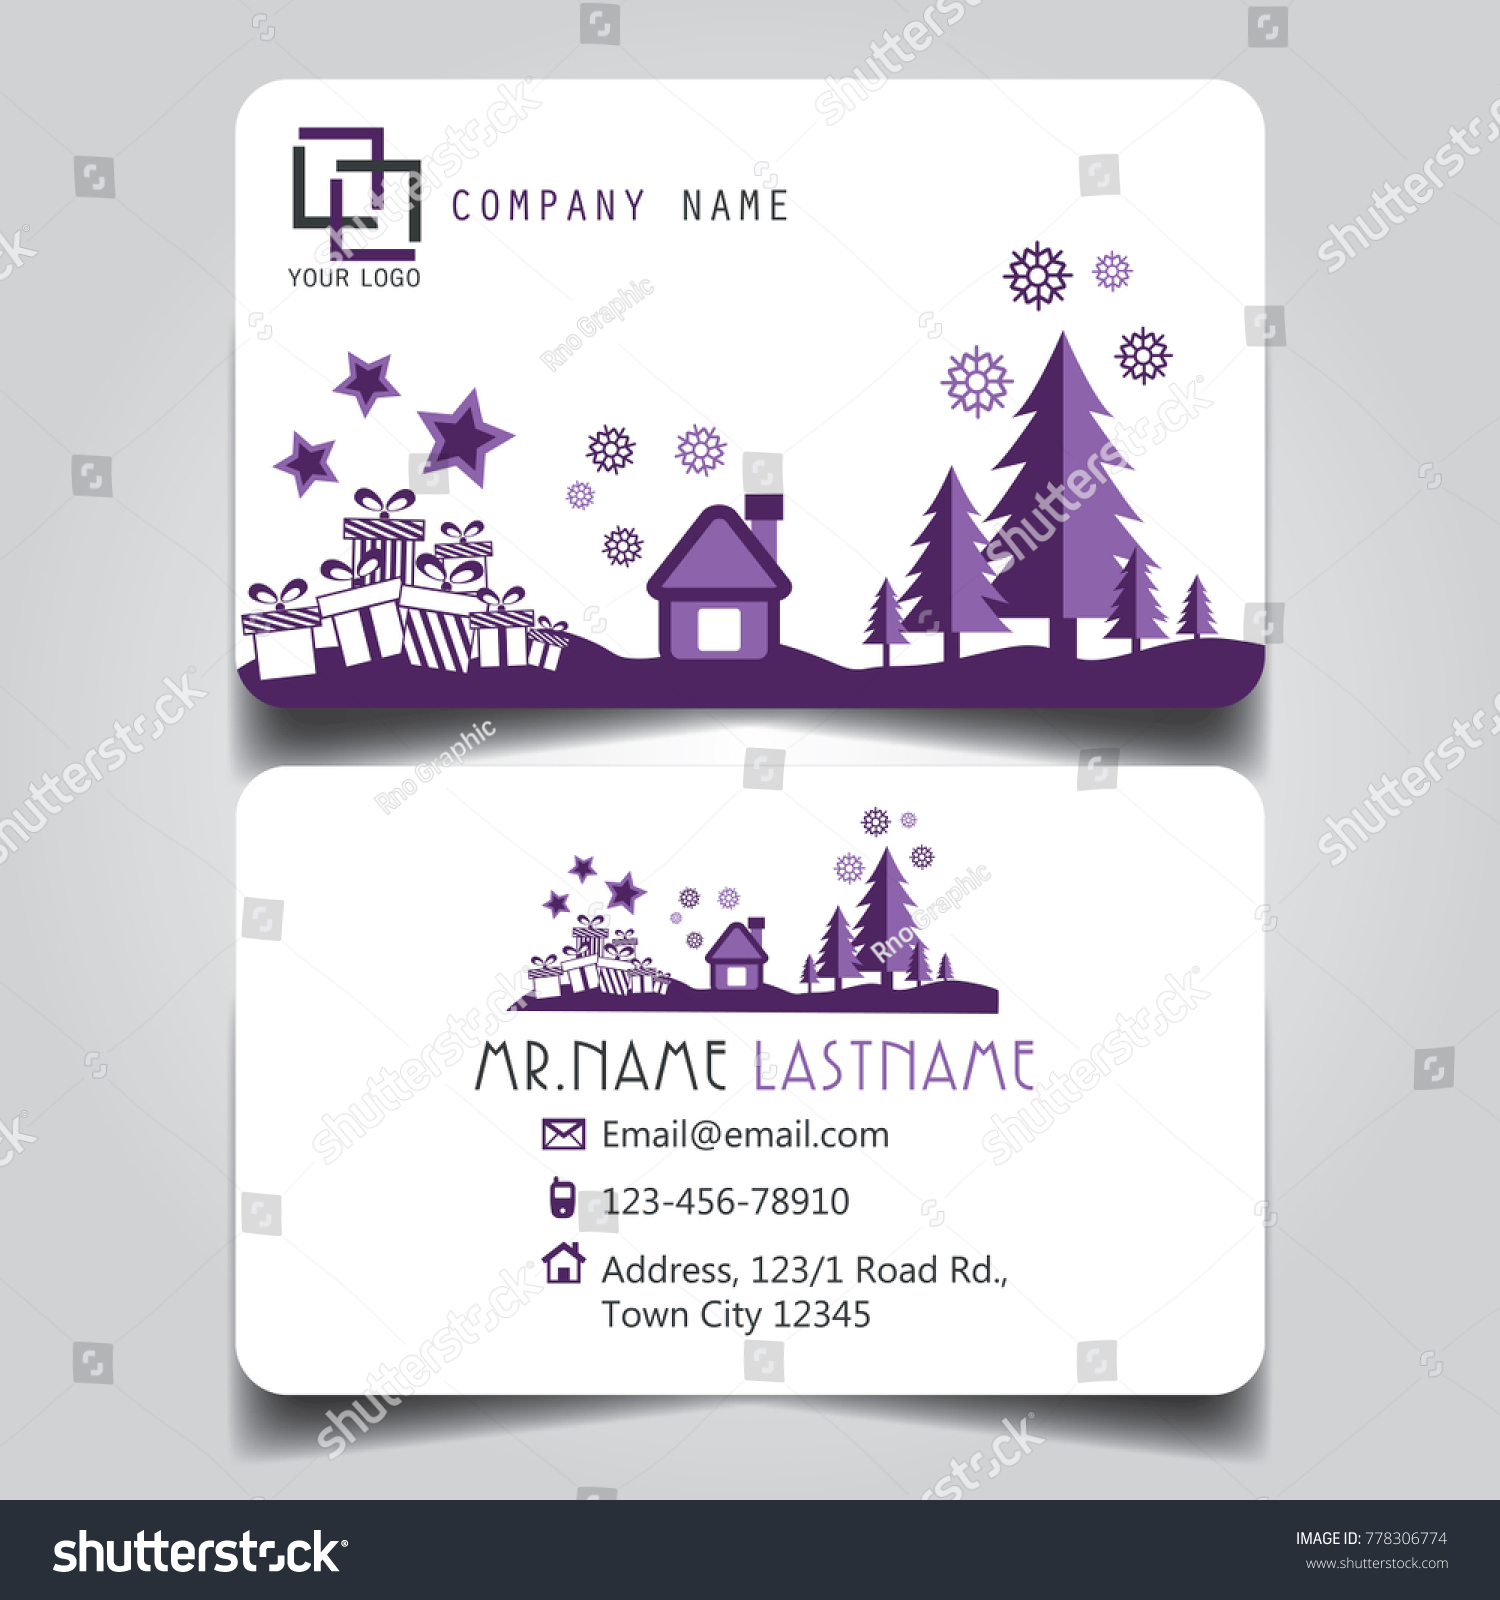 Christmas Purple White Theme Creative Business Stock Vector (Royalty ...